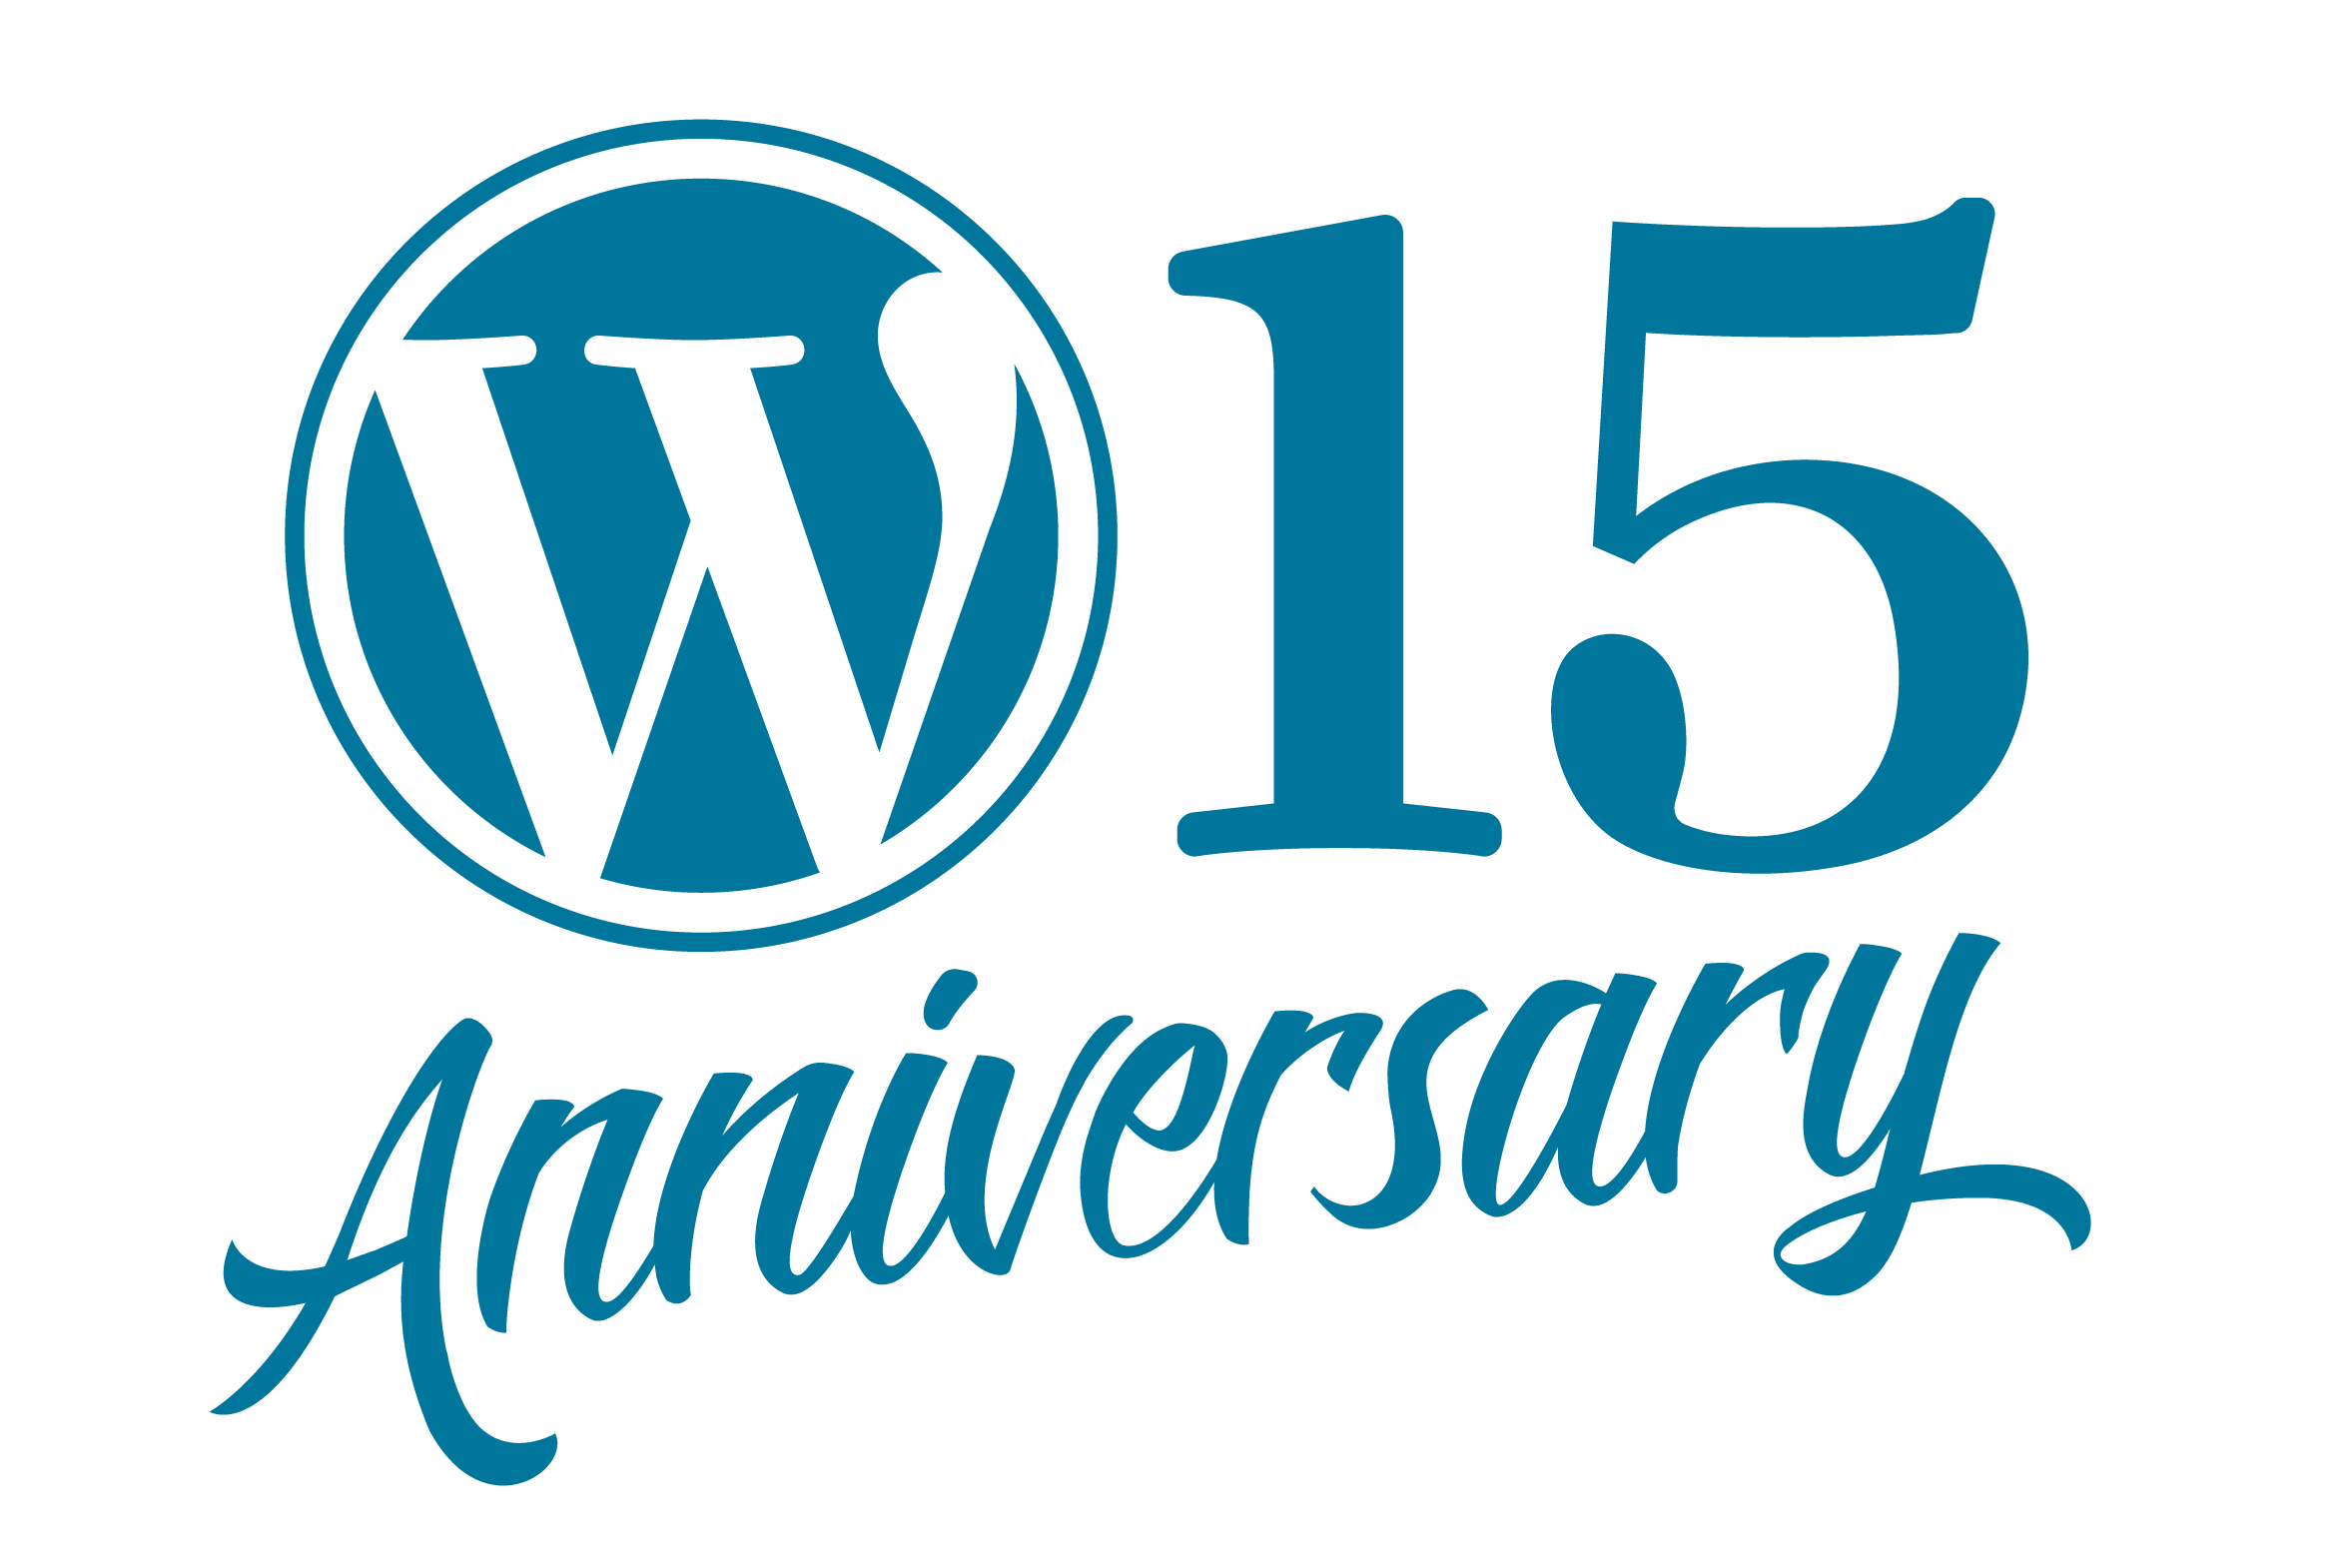 WordPress 15 Anniversary